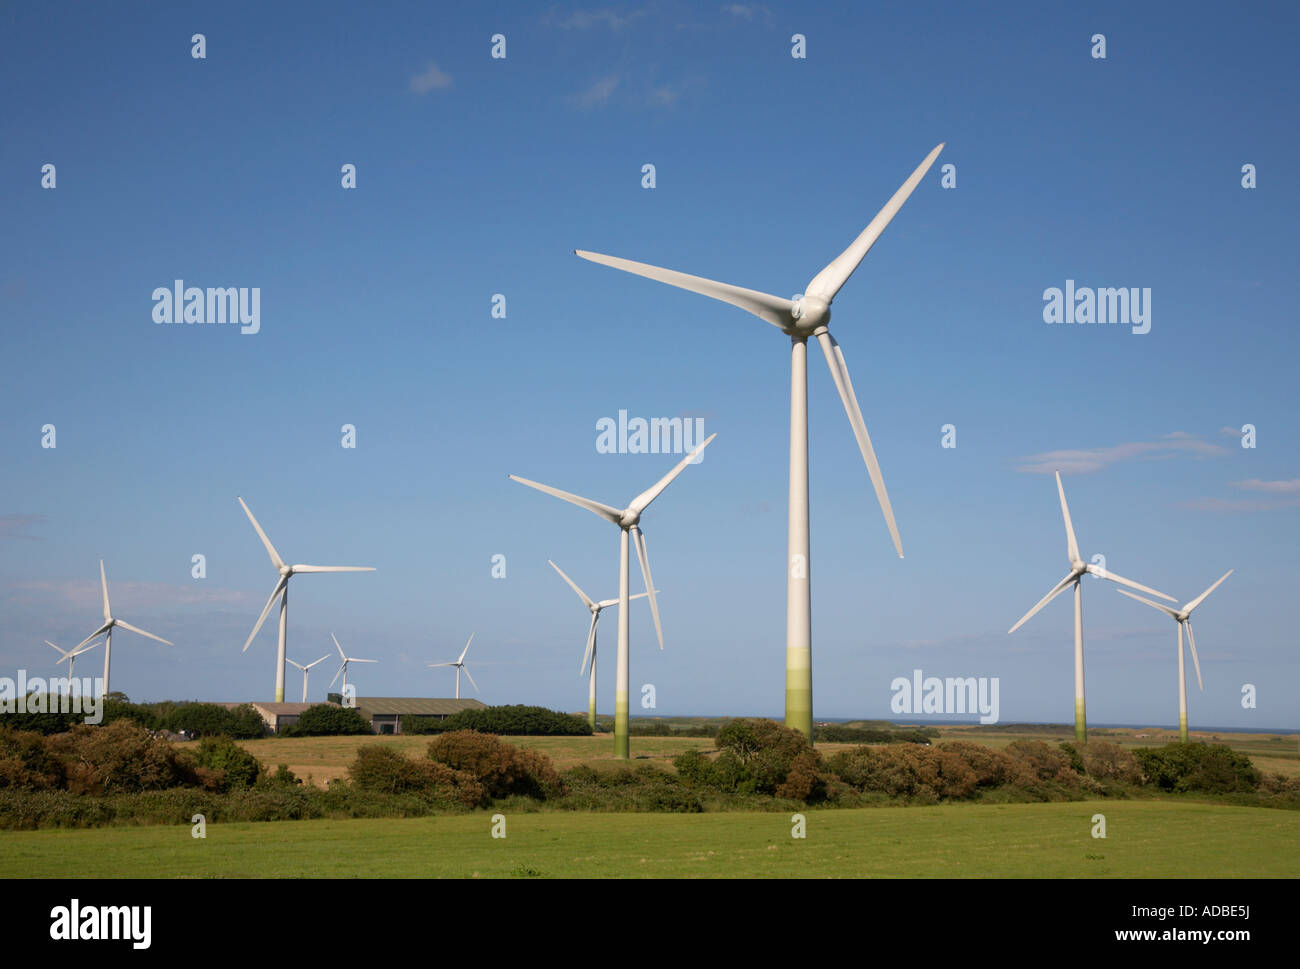 11 wind turbines and farm outbuildings on wind farm against blue cloudy sky and green fields in county wexford ireland - Stock Image